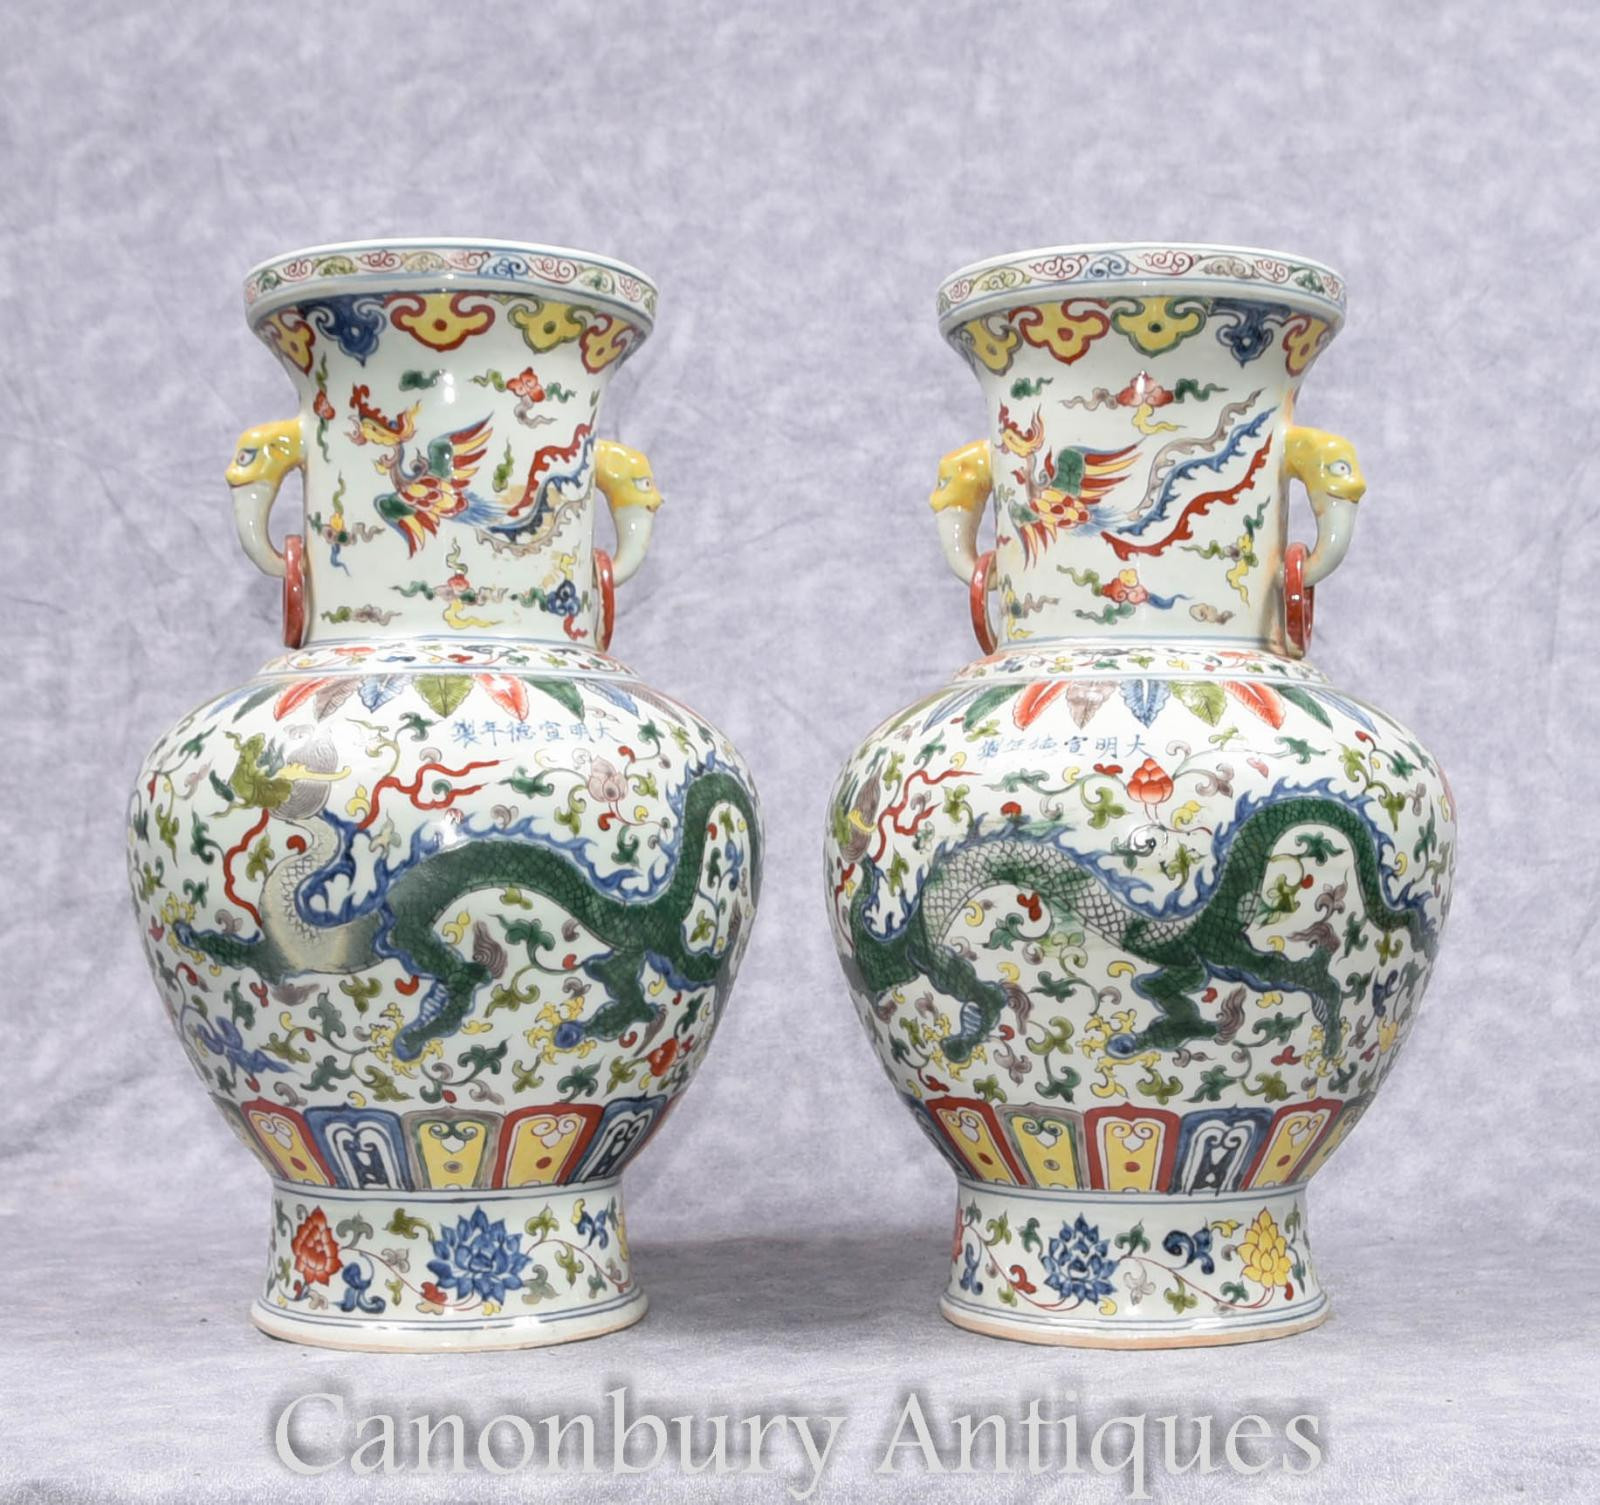 blue chinese porcelain vase of pair chinese qianlong porcelain vases dragon urns ceramic china ebay for piece description gorgeous pair of chinese qianlong style porcelain vases